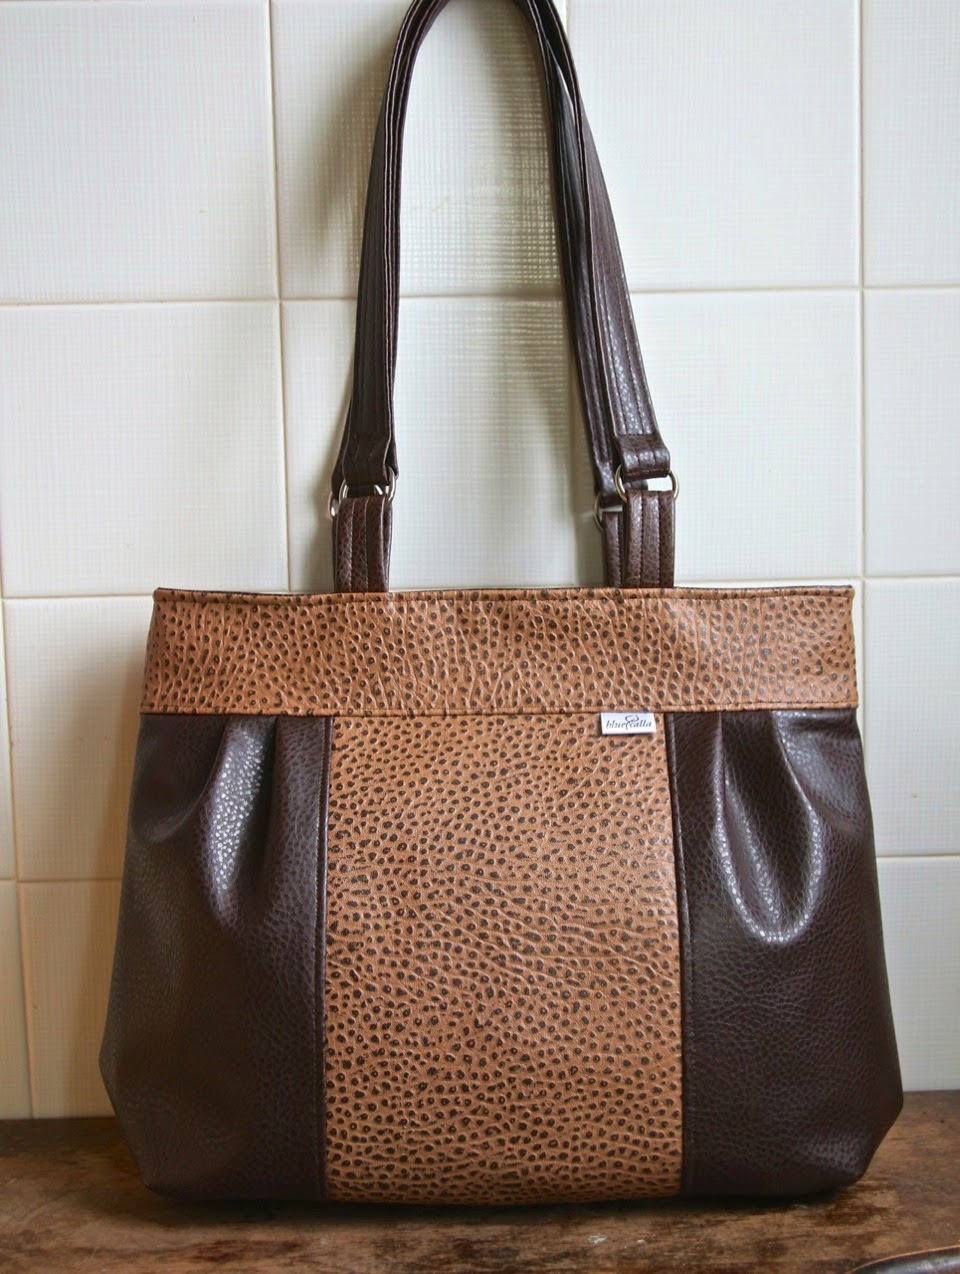 799a28f27340 The exterior of this bag is made completely from faux leather. I used 2  coordinating patterns  one solid pebbled chocolate brown for the pleated  sides and a ...